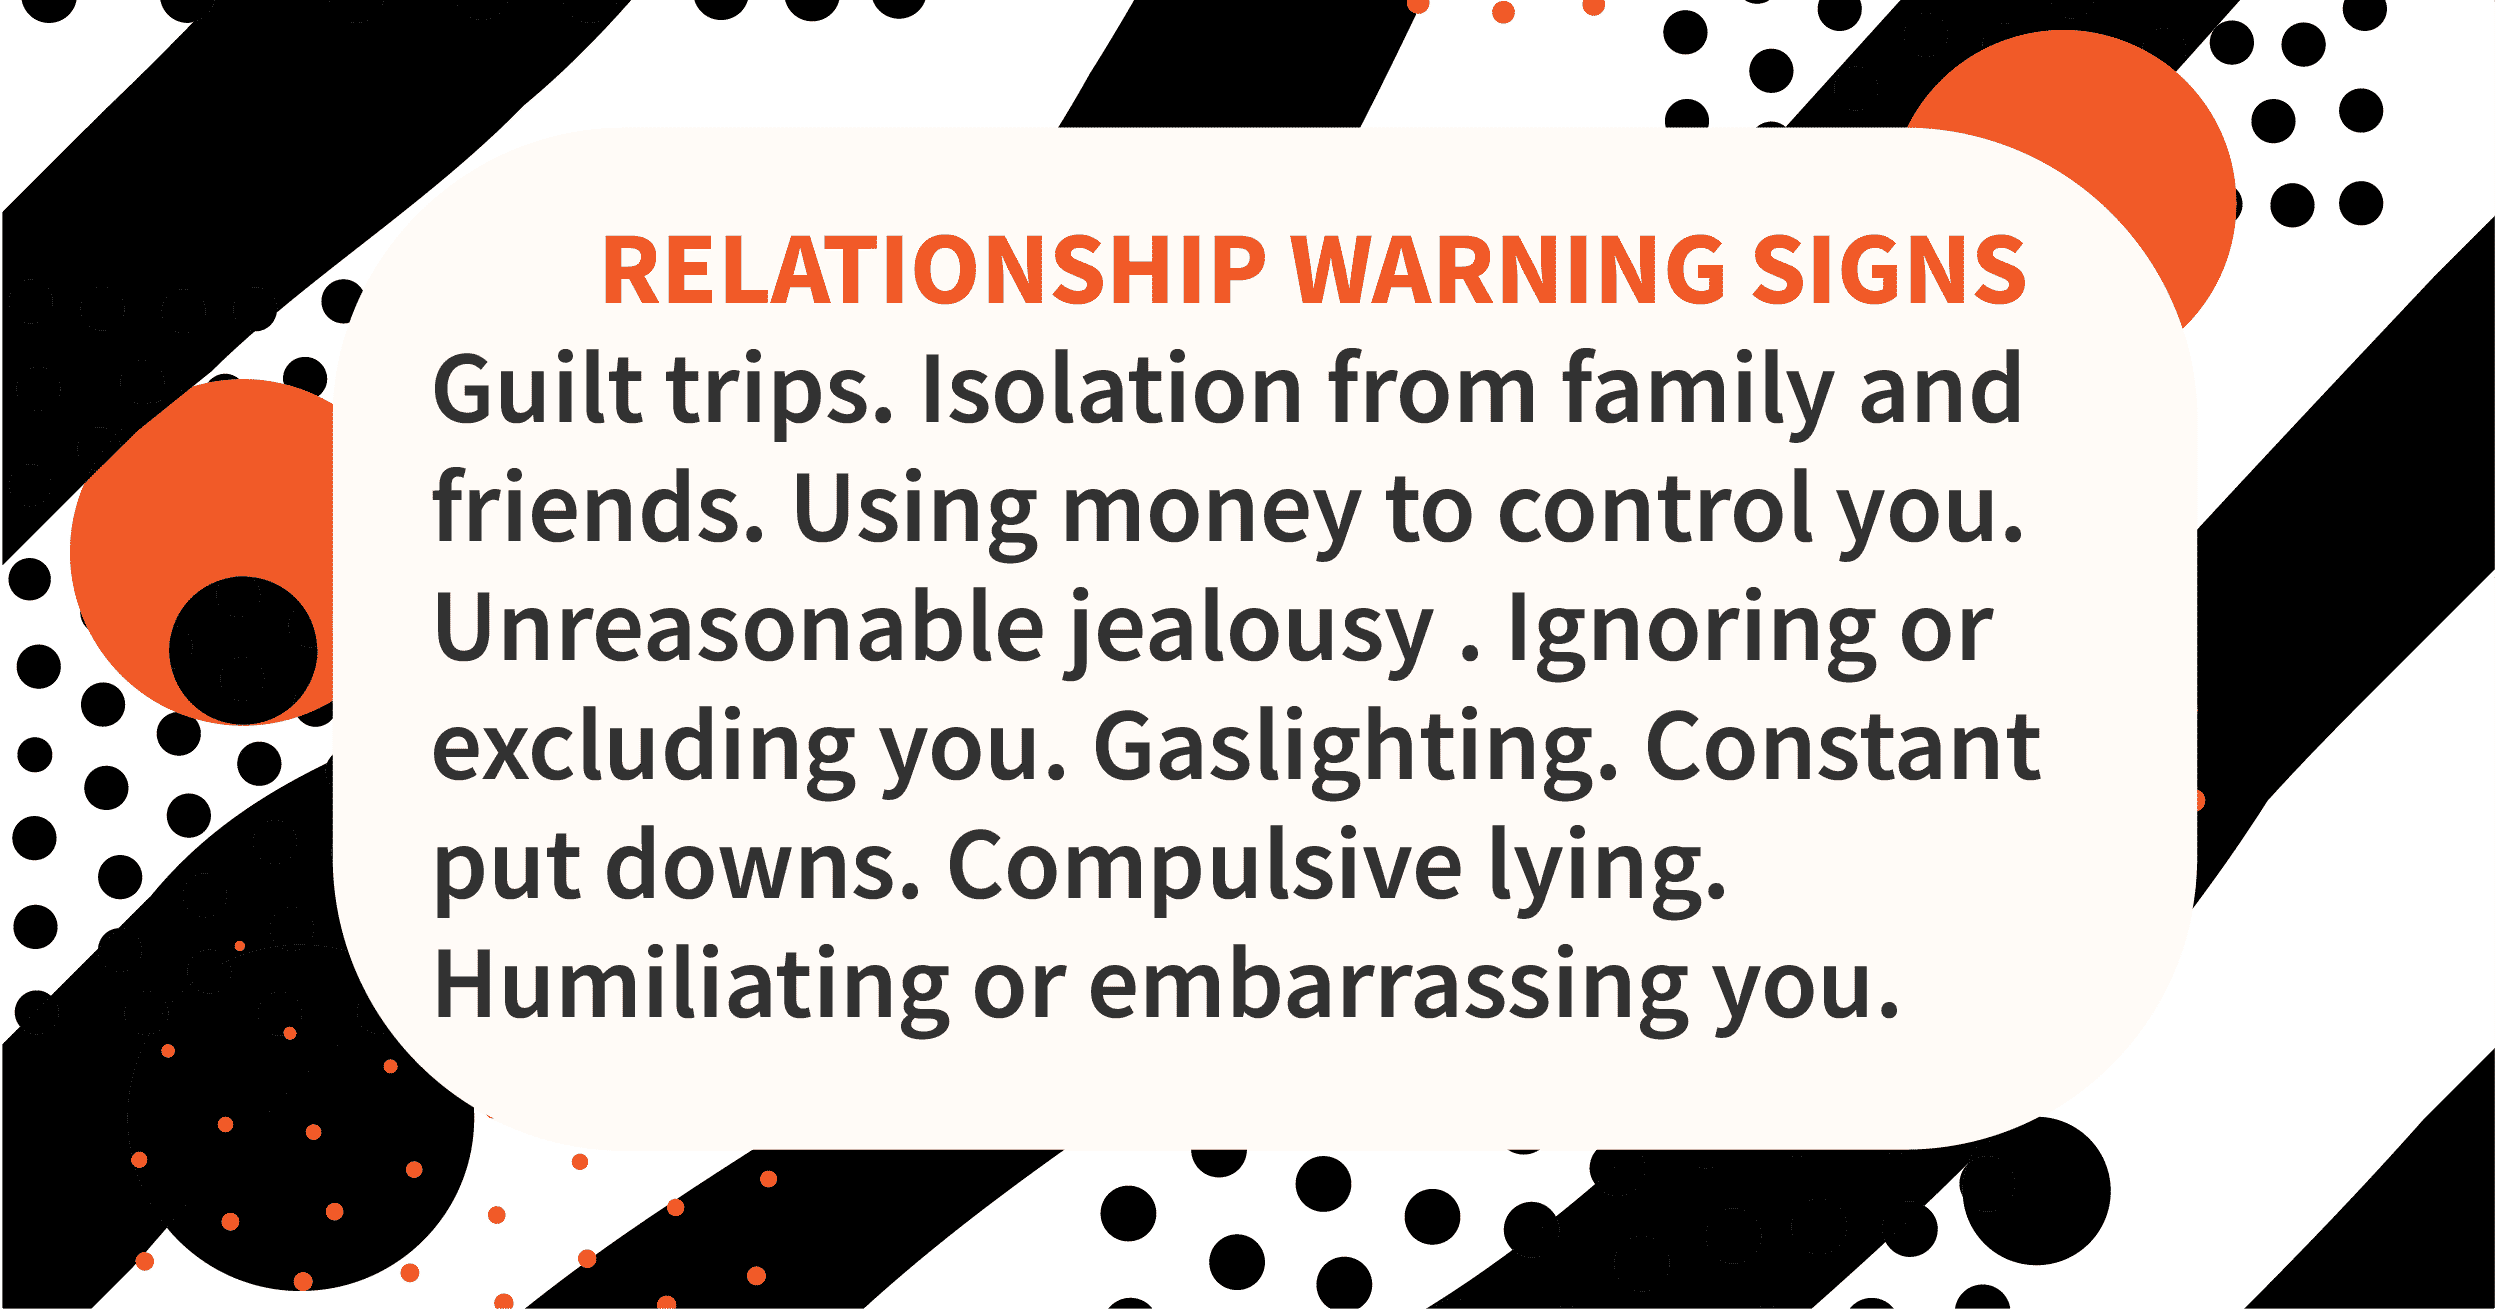 If it's a toxic relationship, run